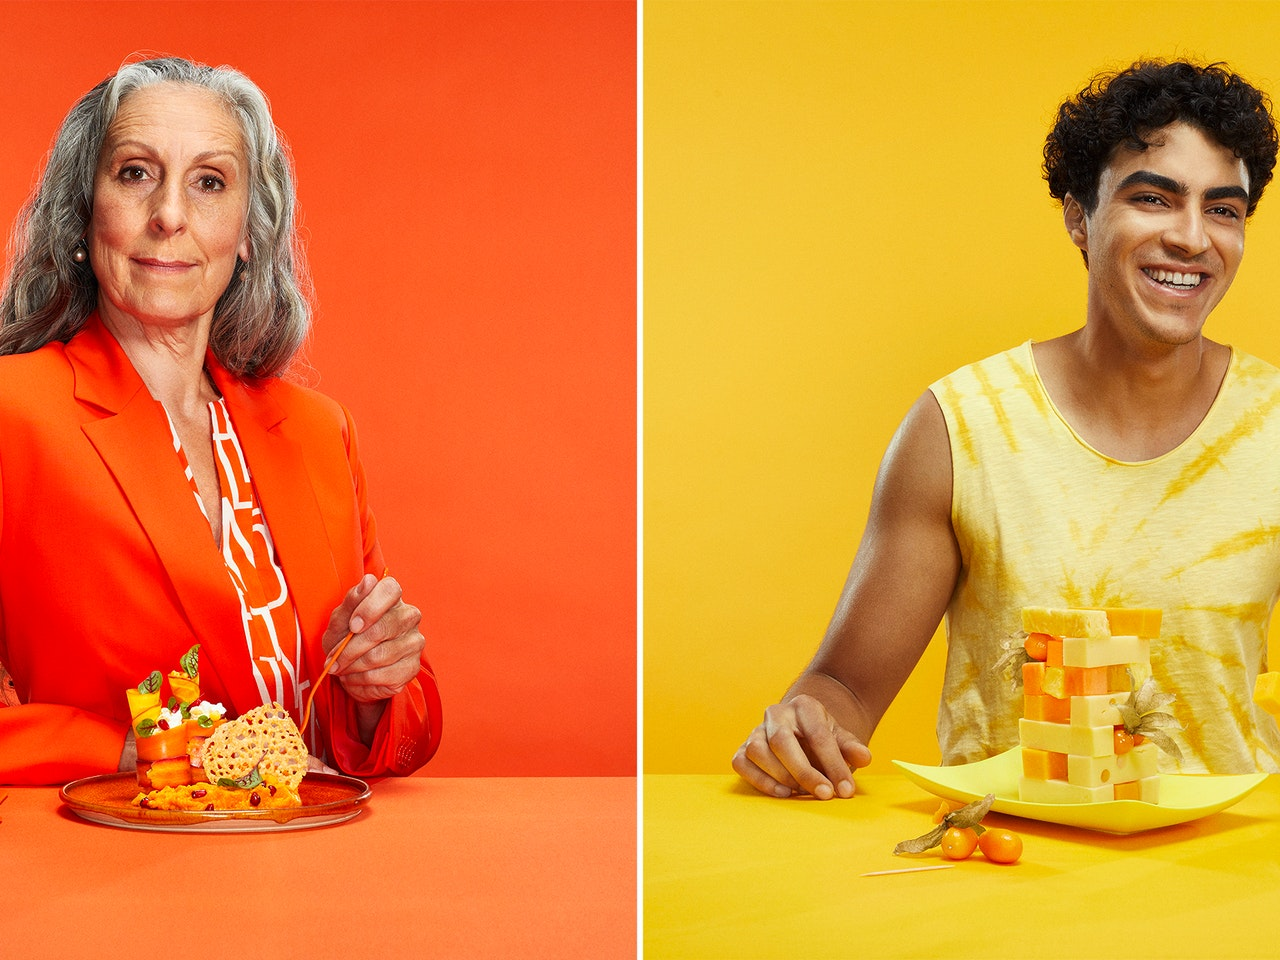 Conceptual - Eat What You Want / Photographer: Per Schorn